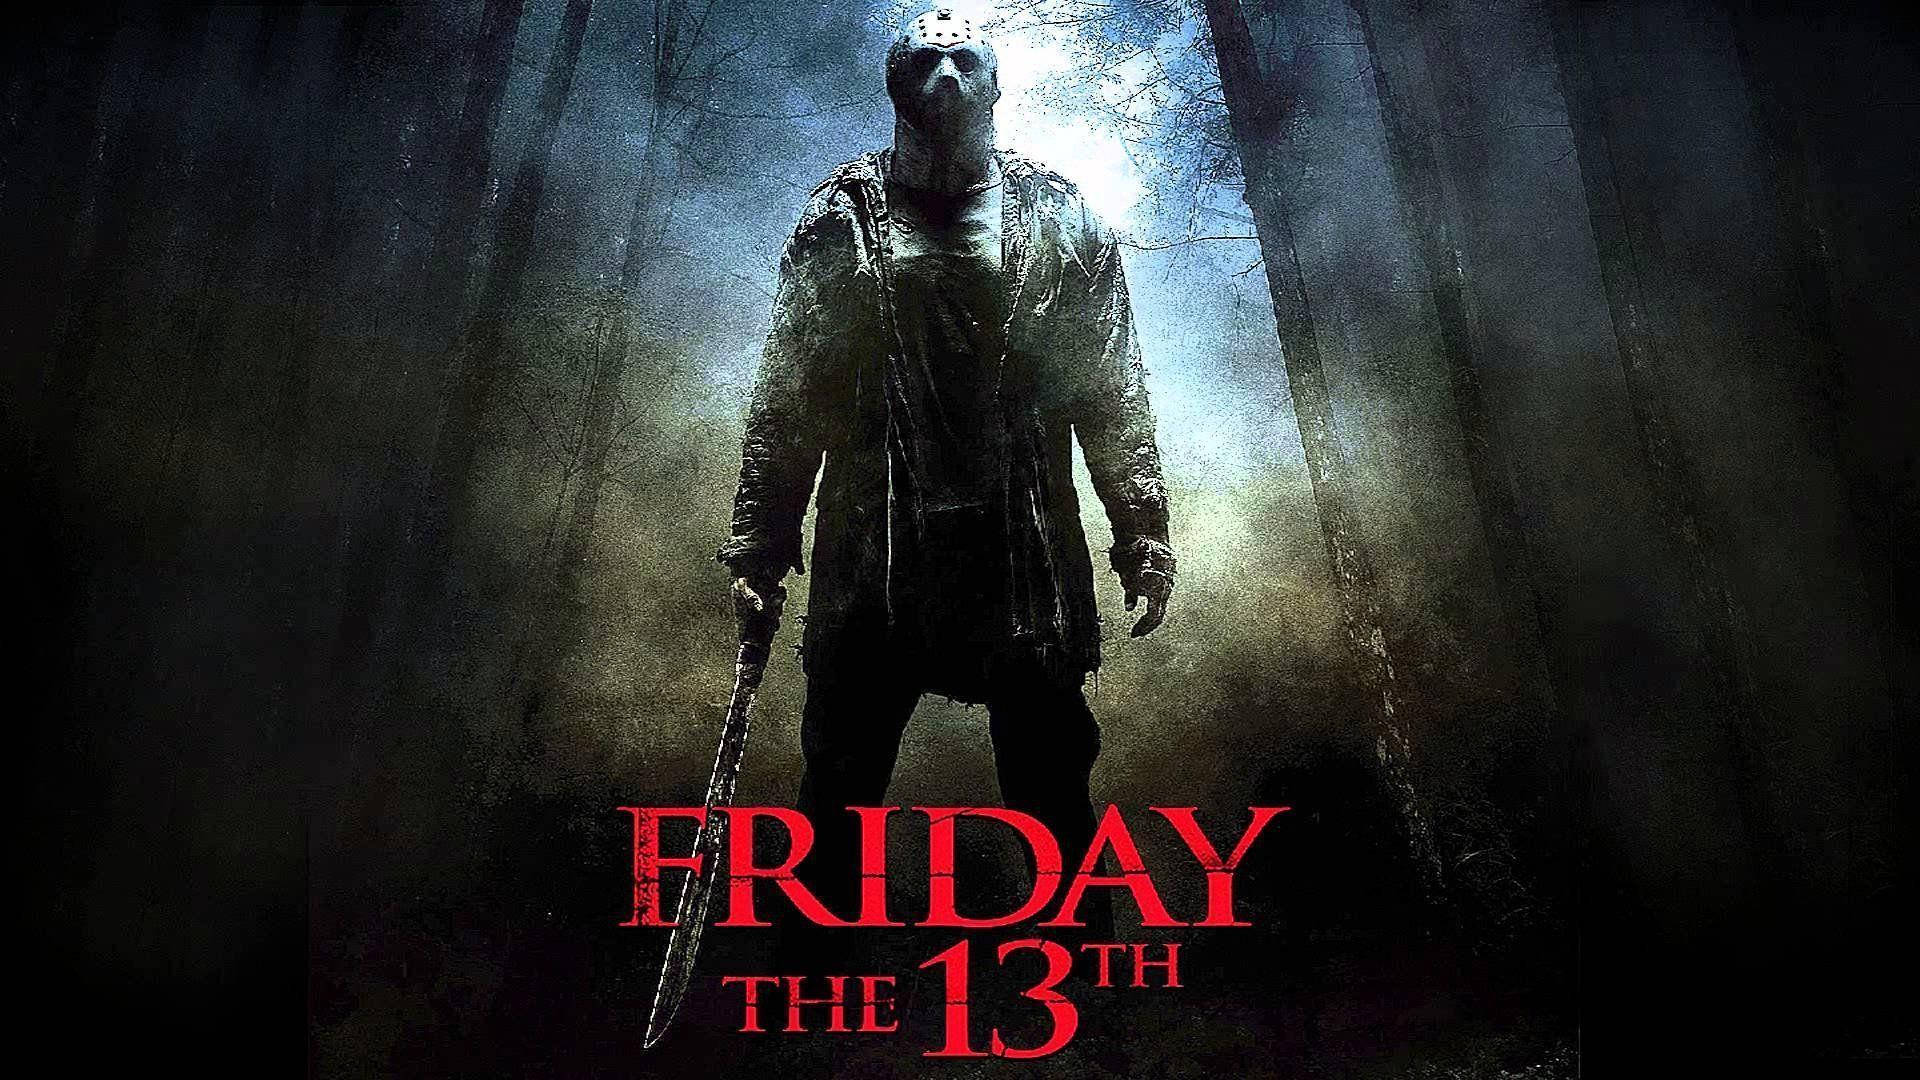 Jason Friday the 13th Wallpapers